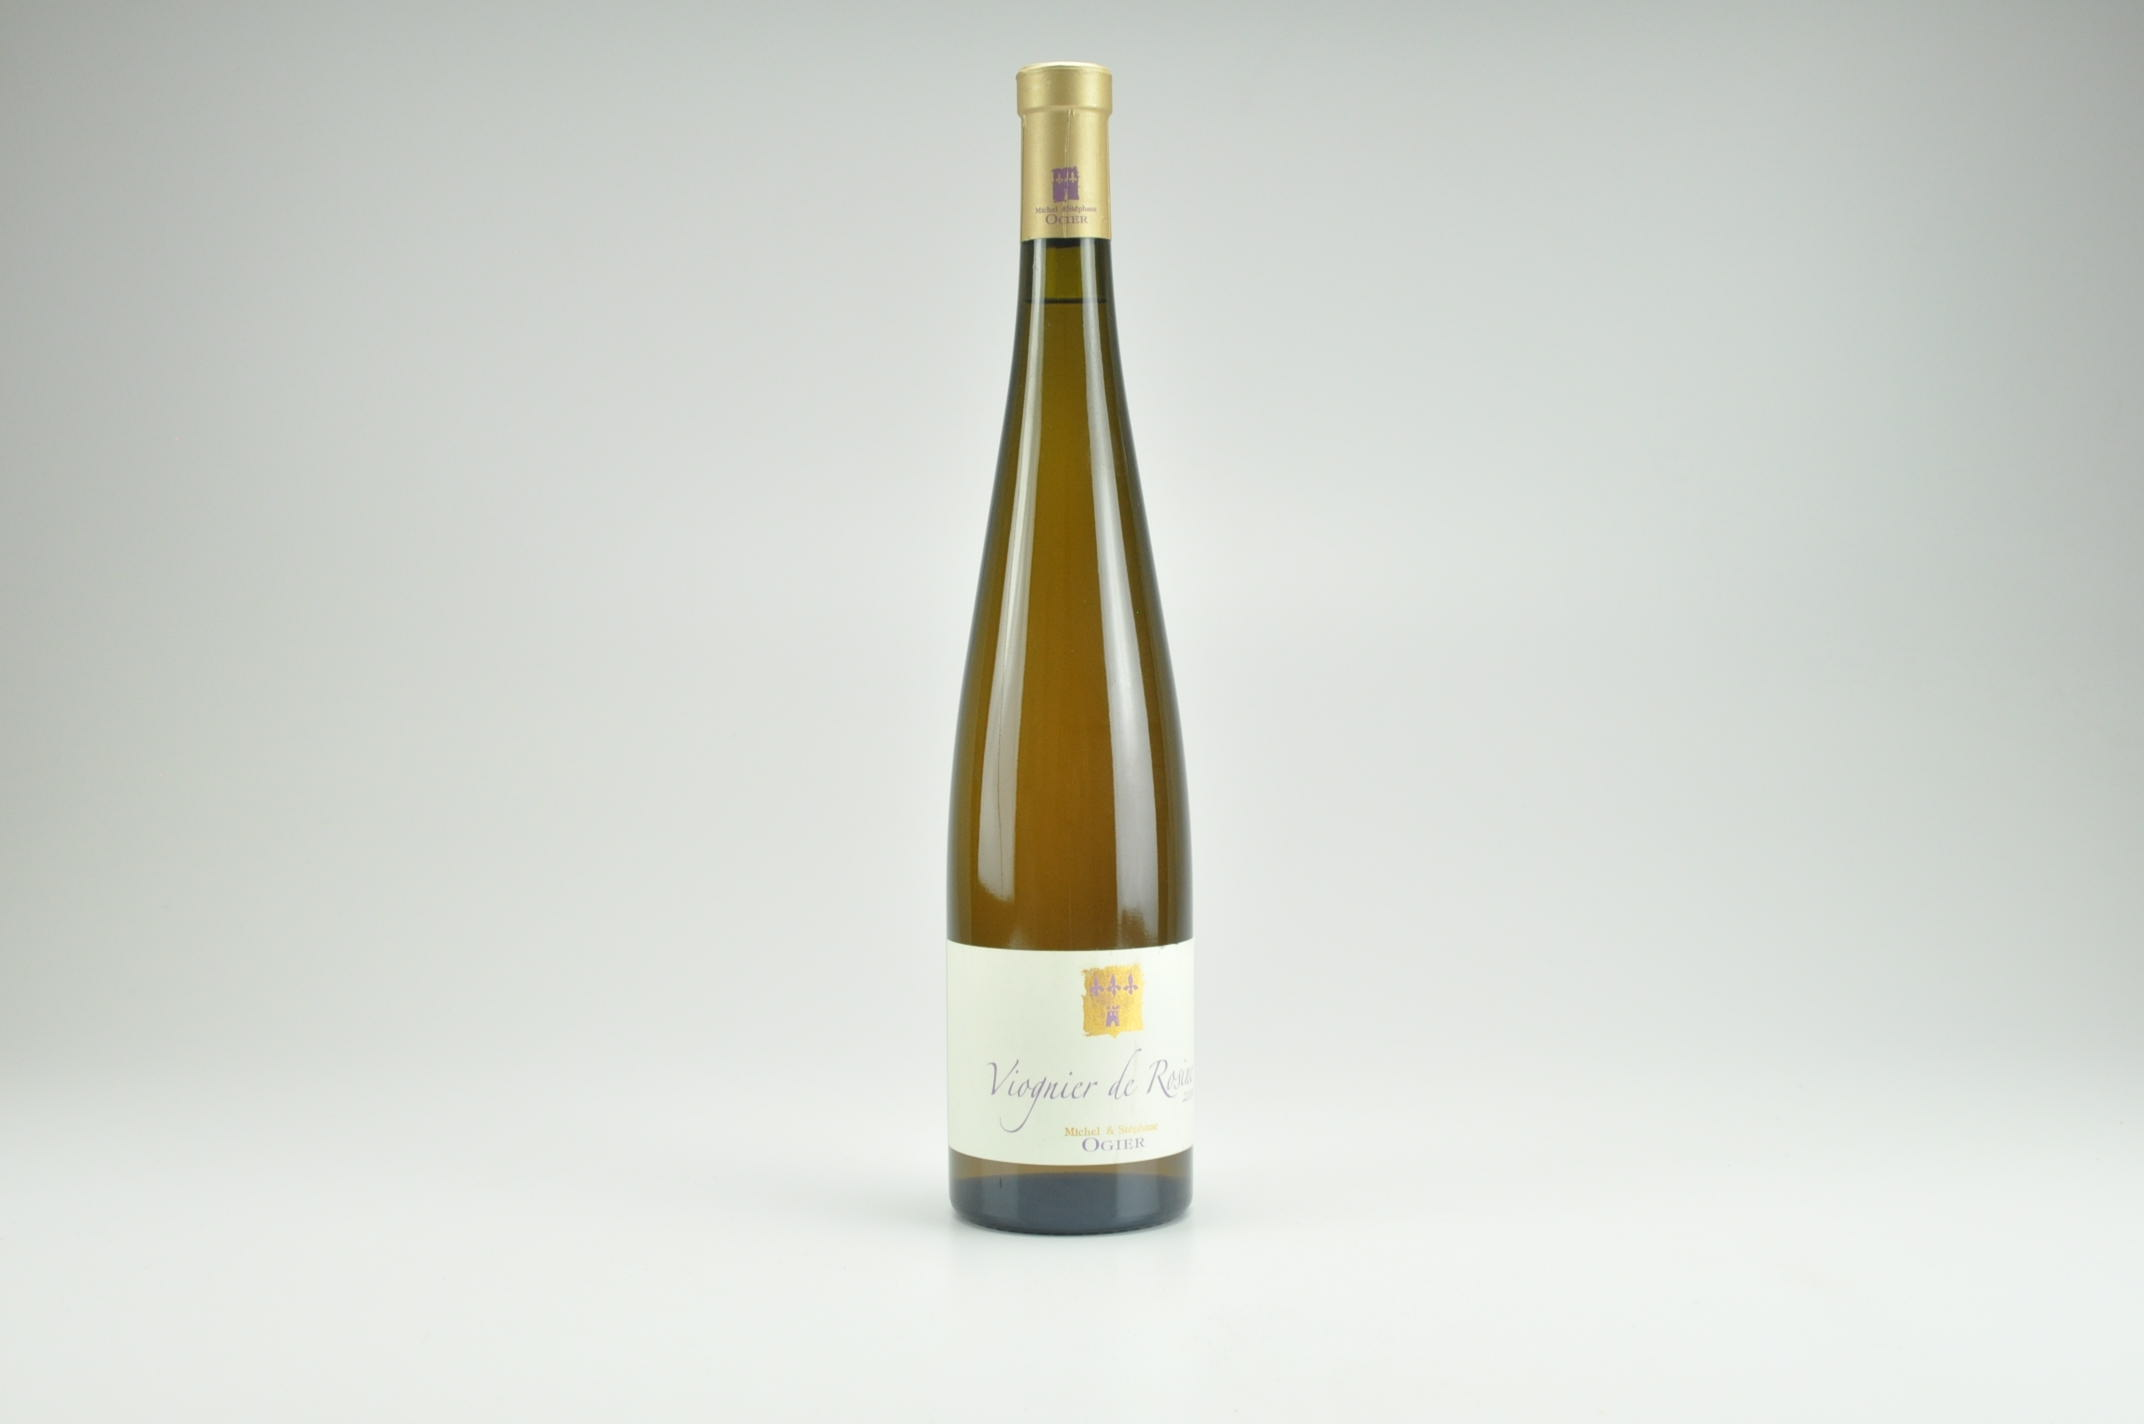 2010 Michel and Stephane Ogier La Rosine Viognier, Rhone WS--90